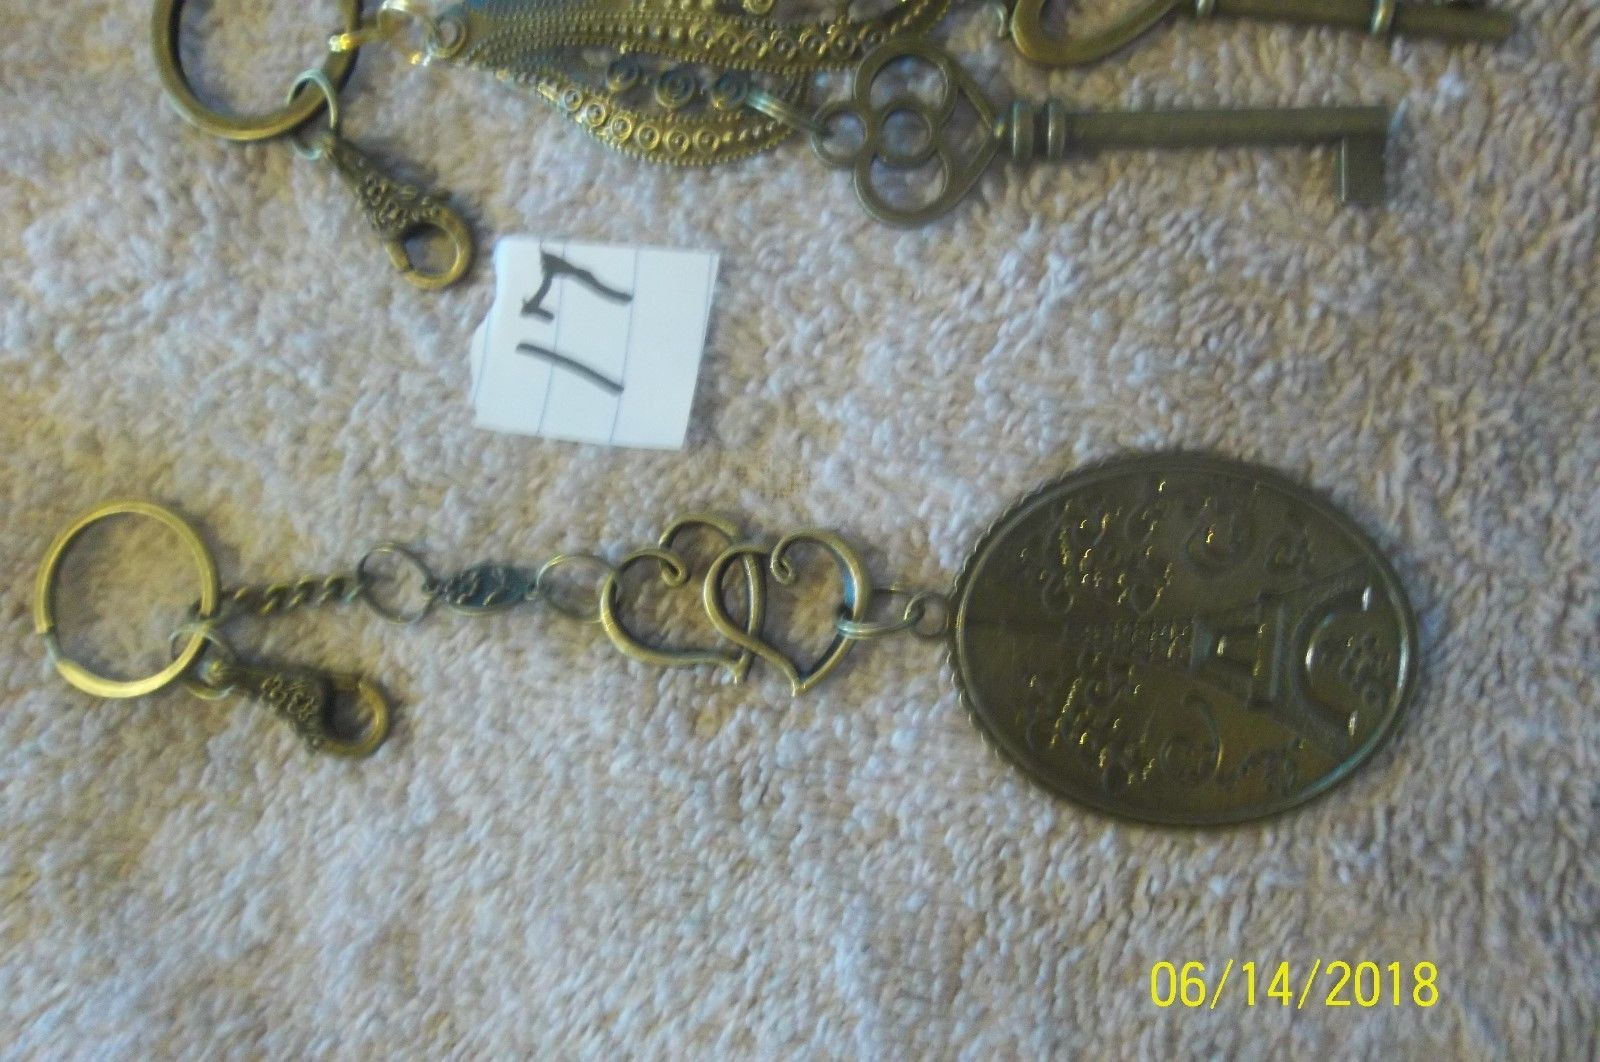 # purse jewelry bronze color keychain backpack  dangle charms #17 lot of 2 image 2